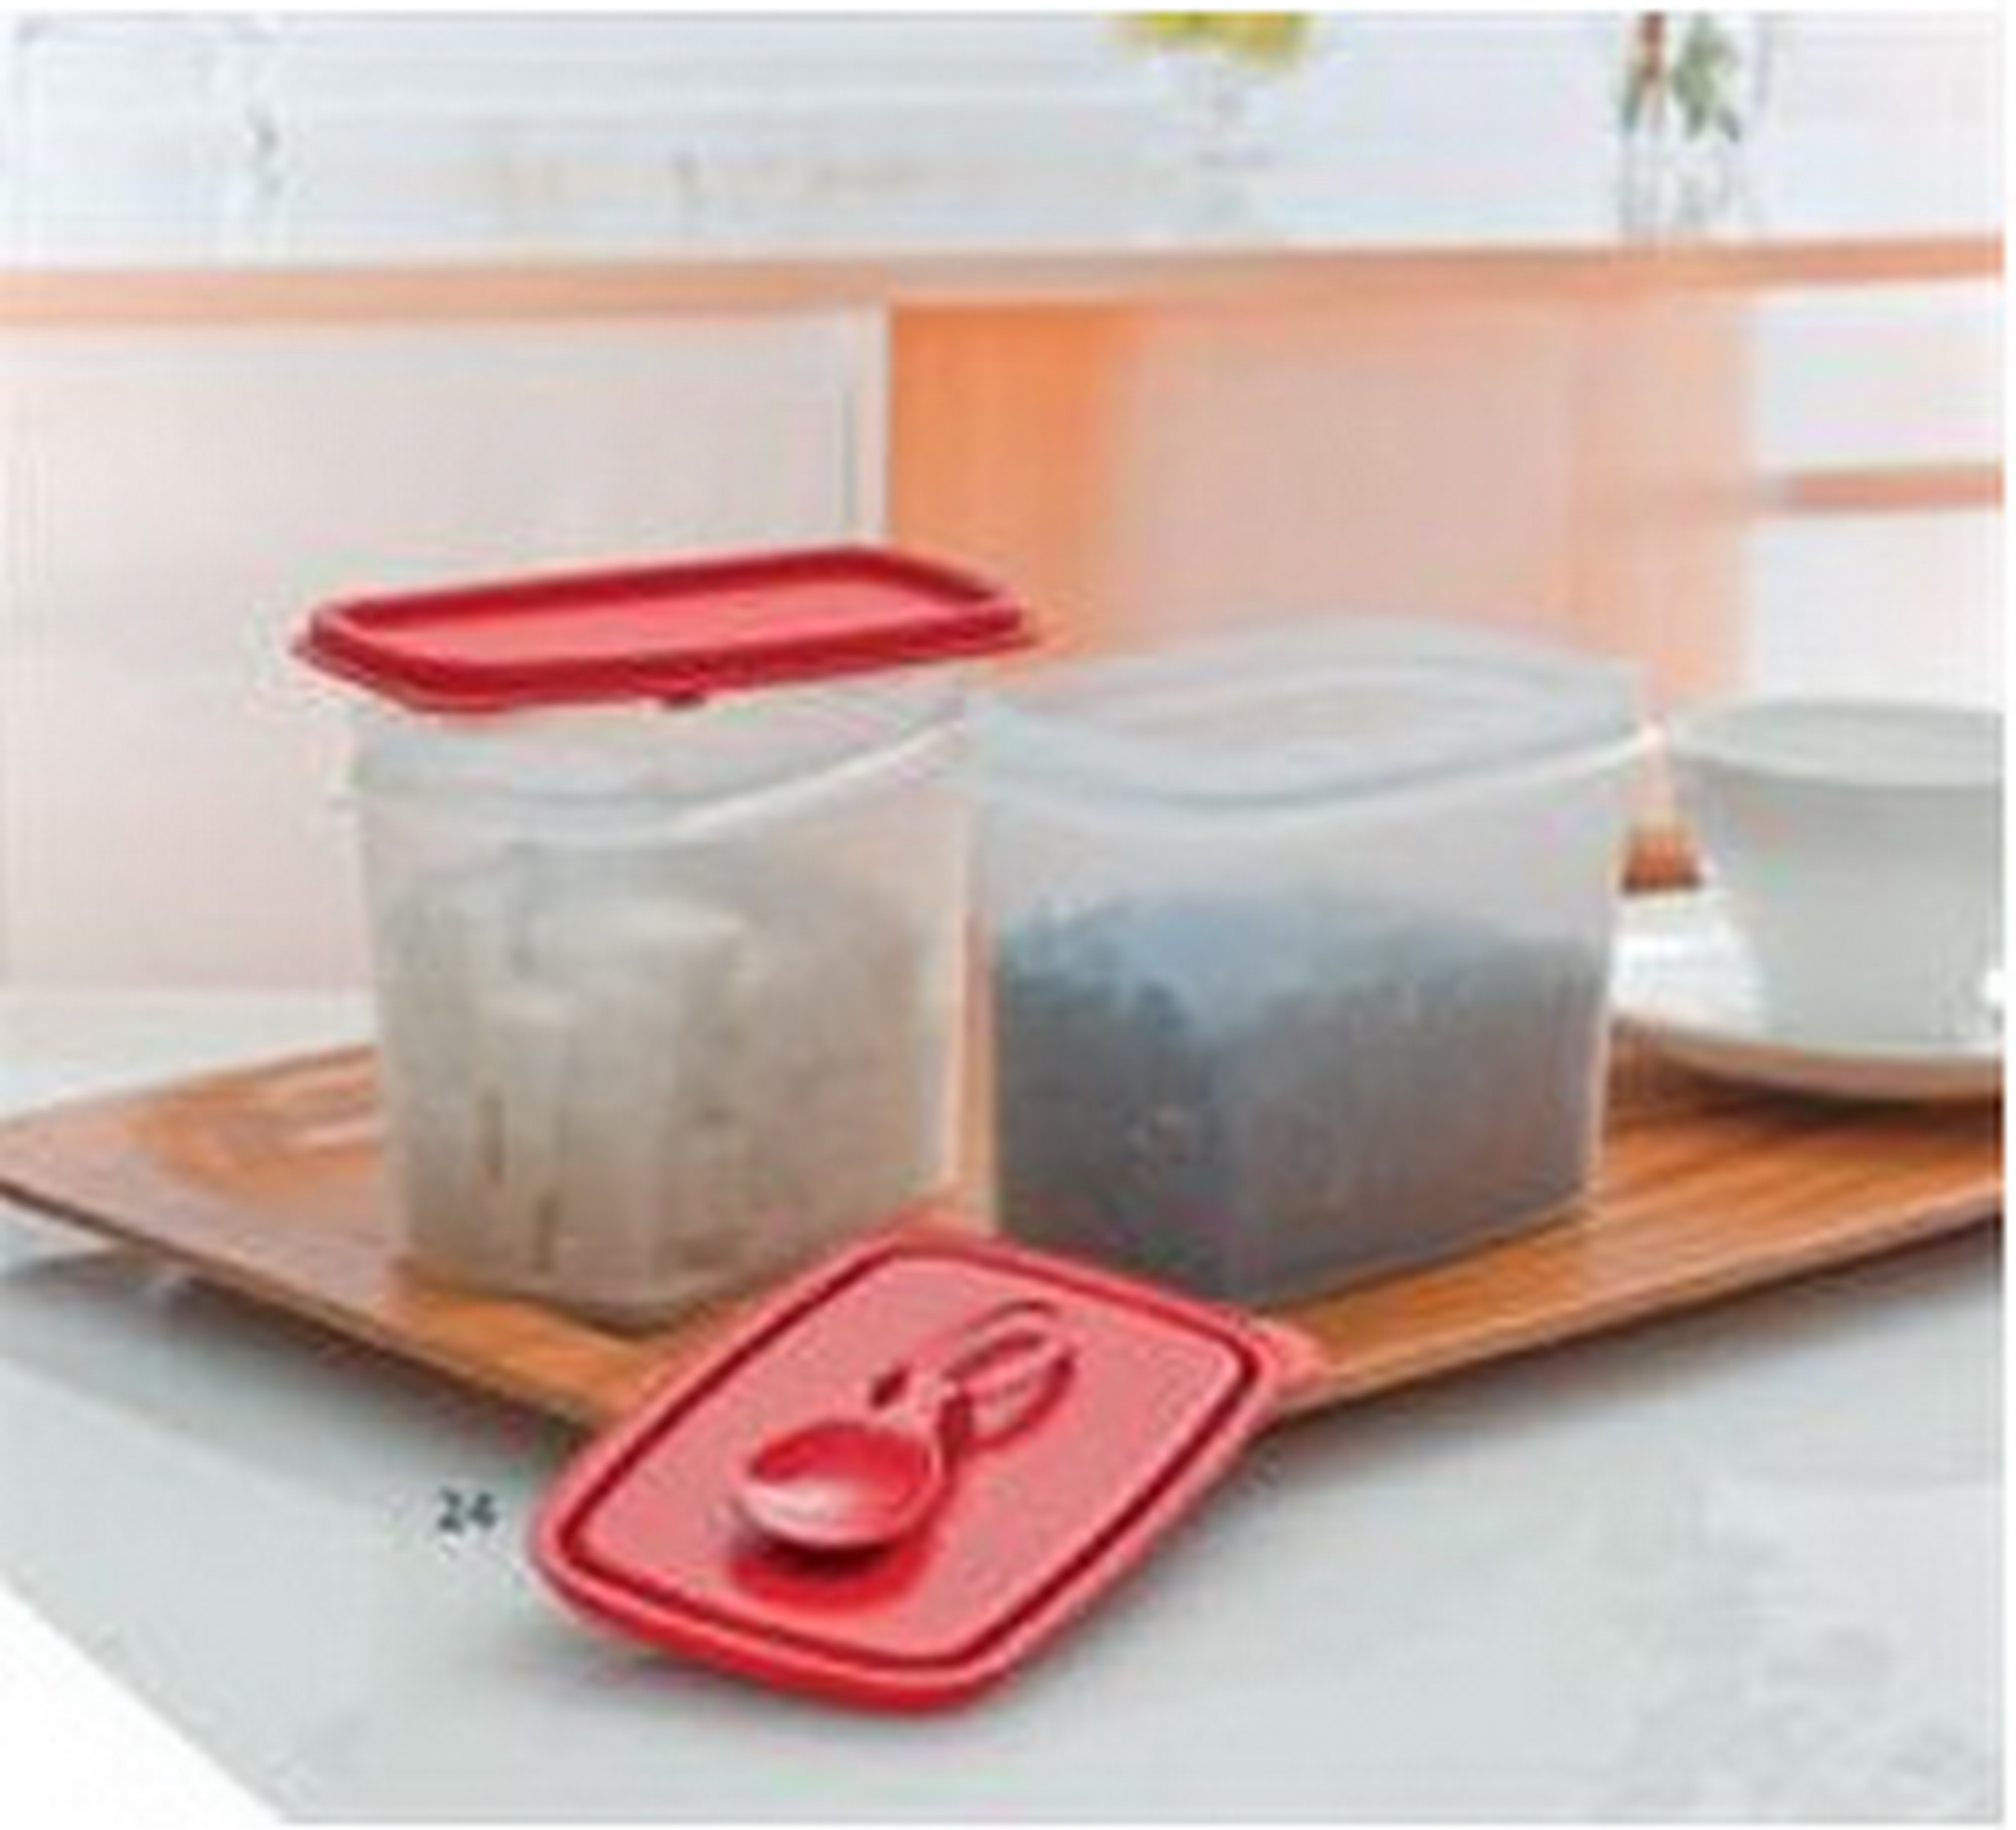 http://freetupperware.files.wordpress.com/2013/08/tupperware-new-shelf-saver-2.jpg